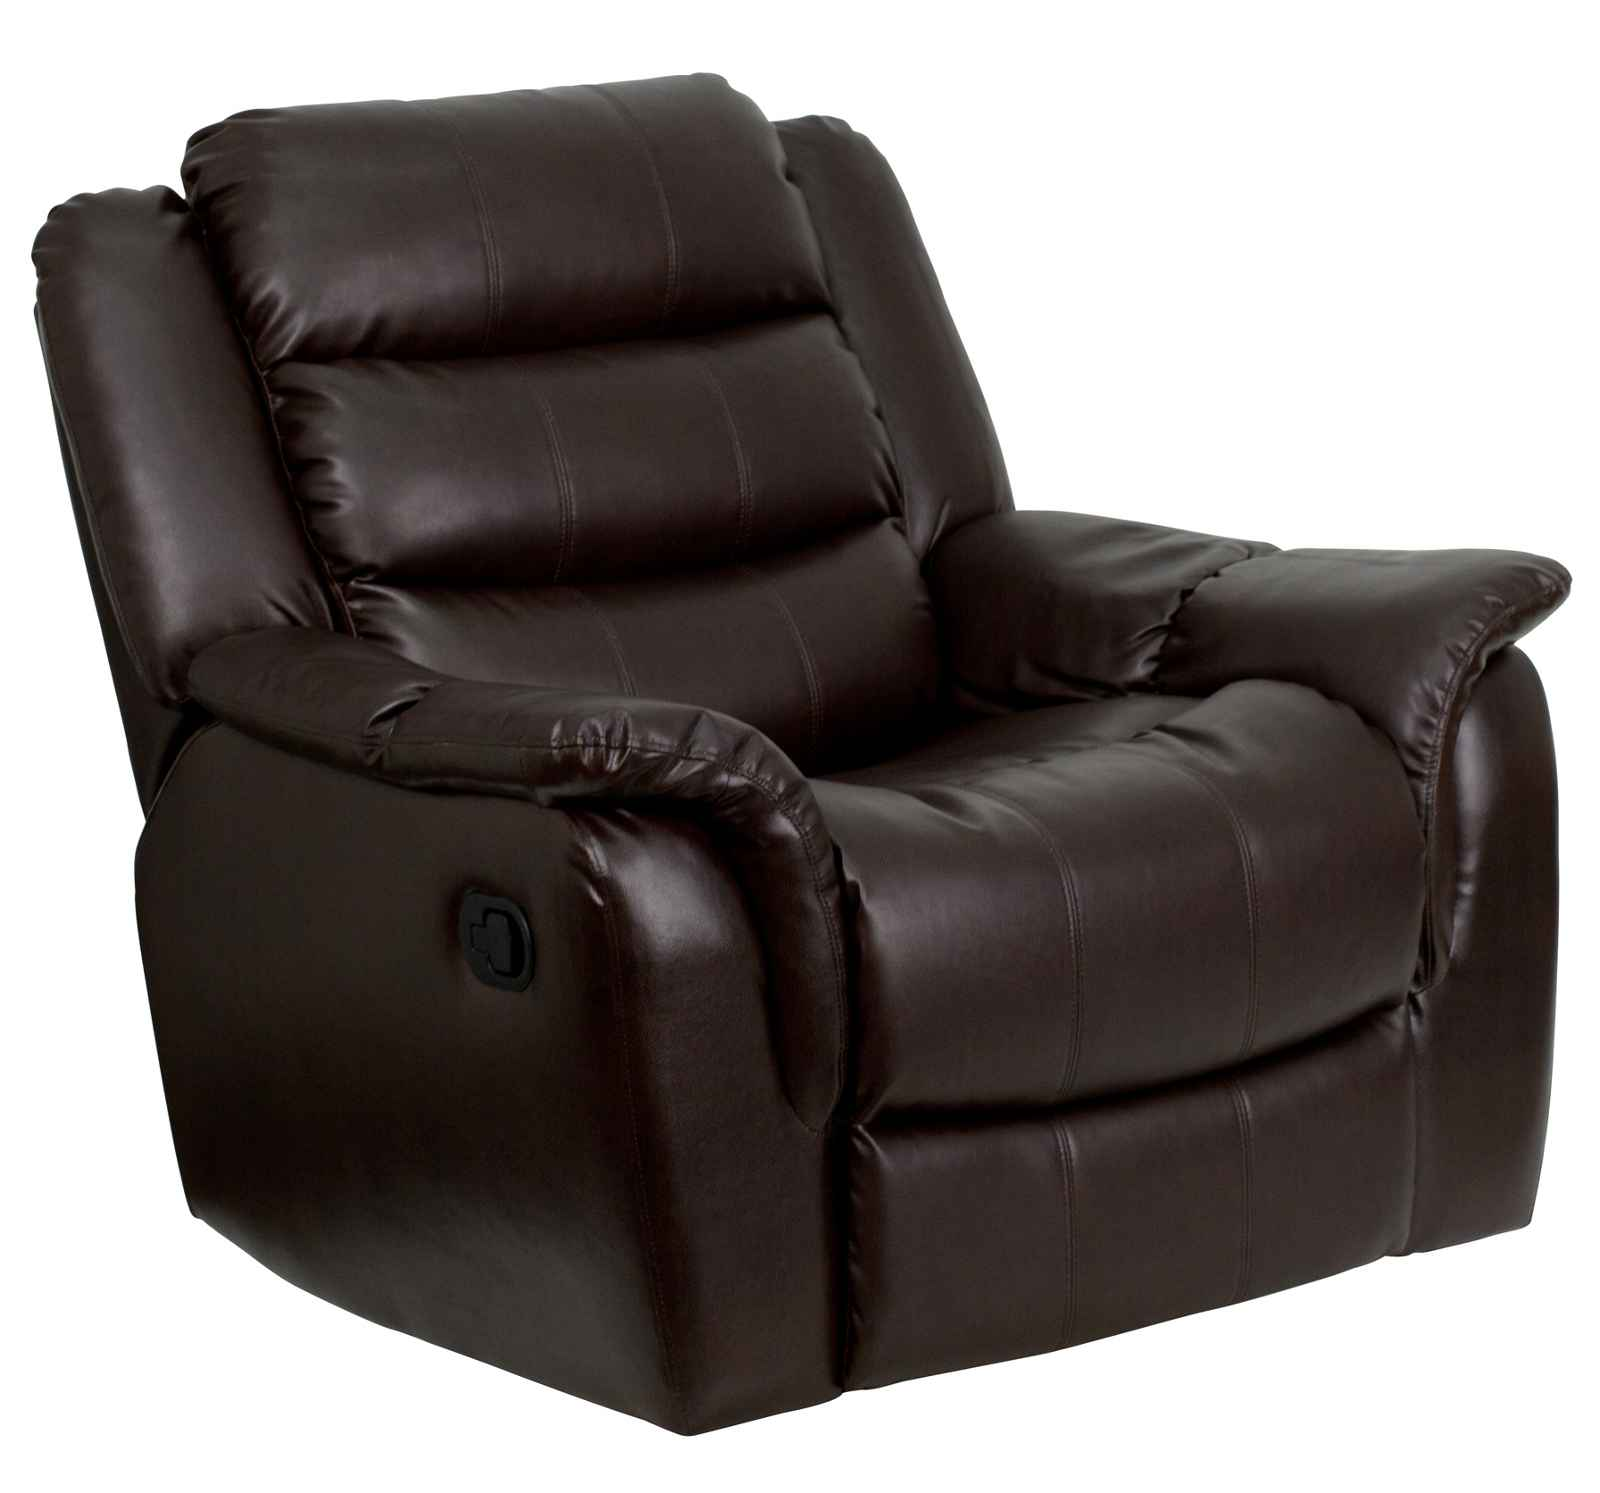 Cheap Black Leather Recliner Chair Deluxe Leisure Chair And Stool Leather Reclining Sofas For